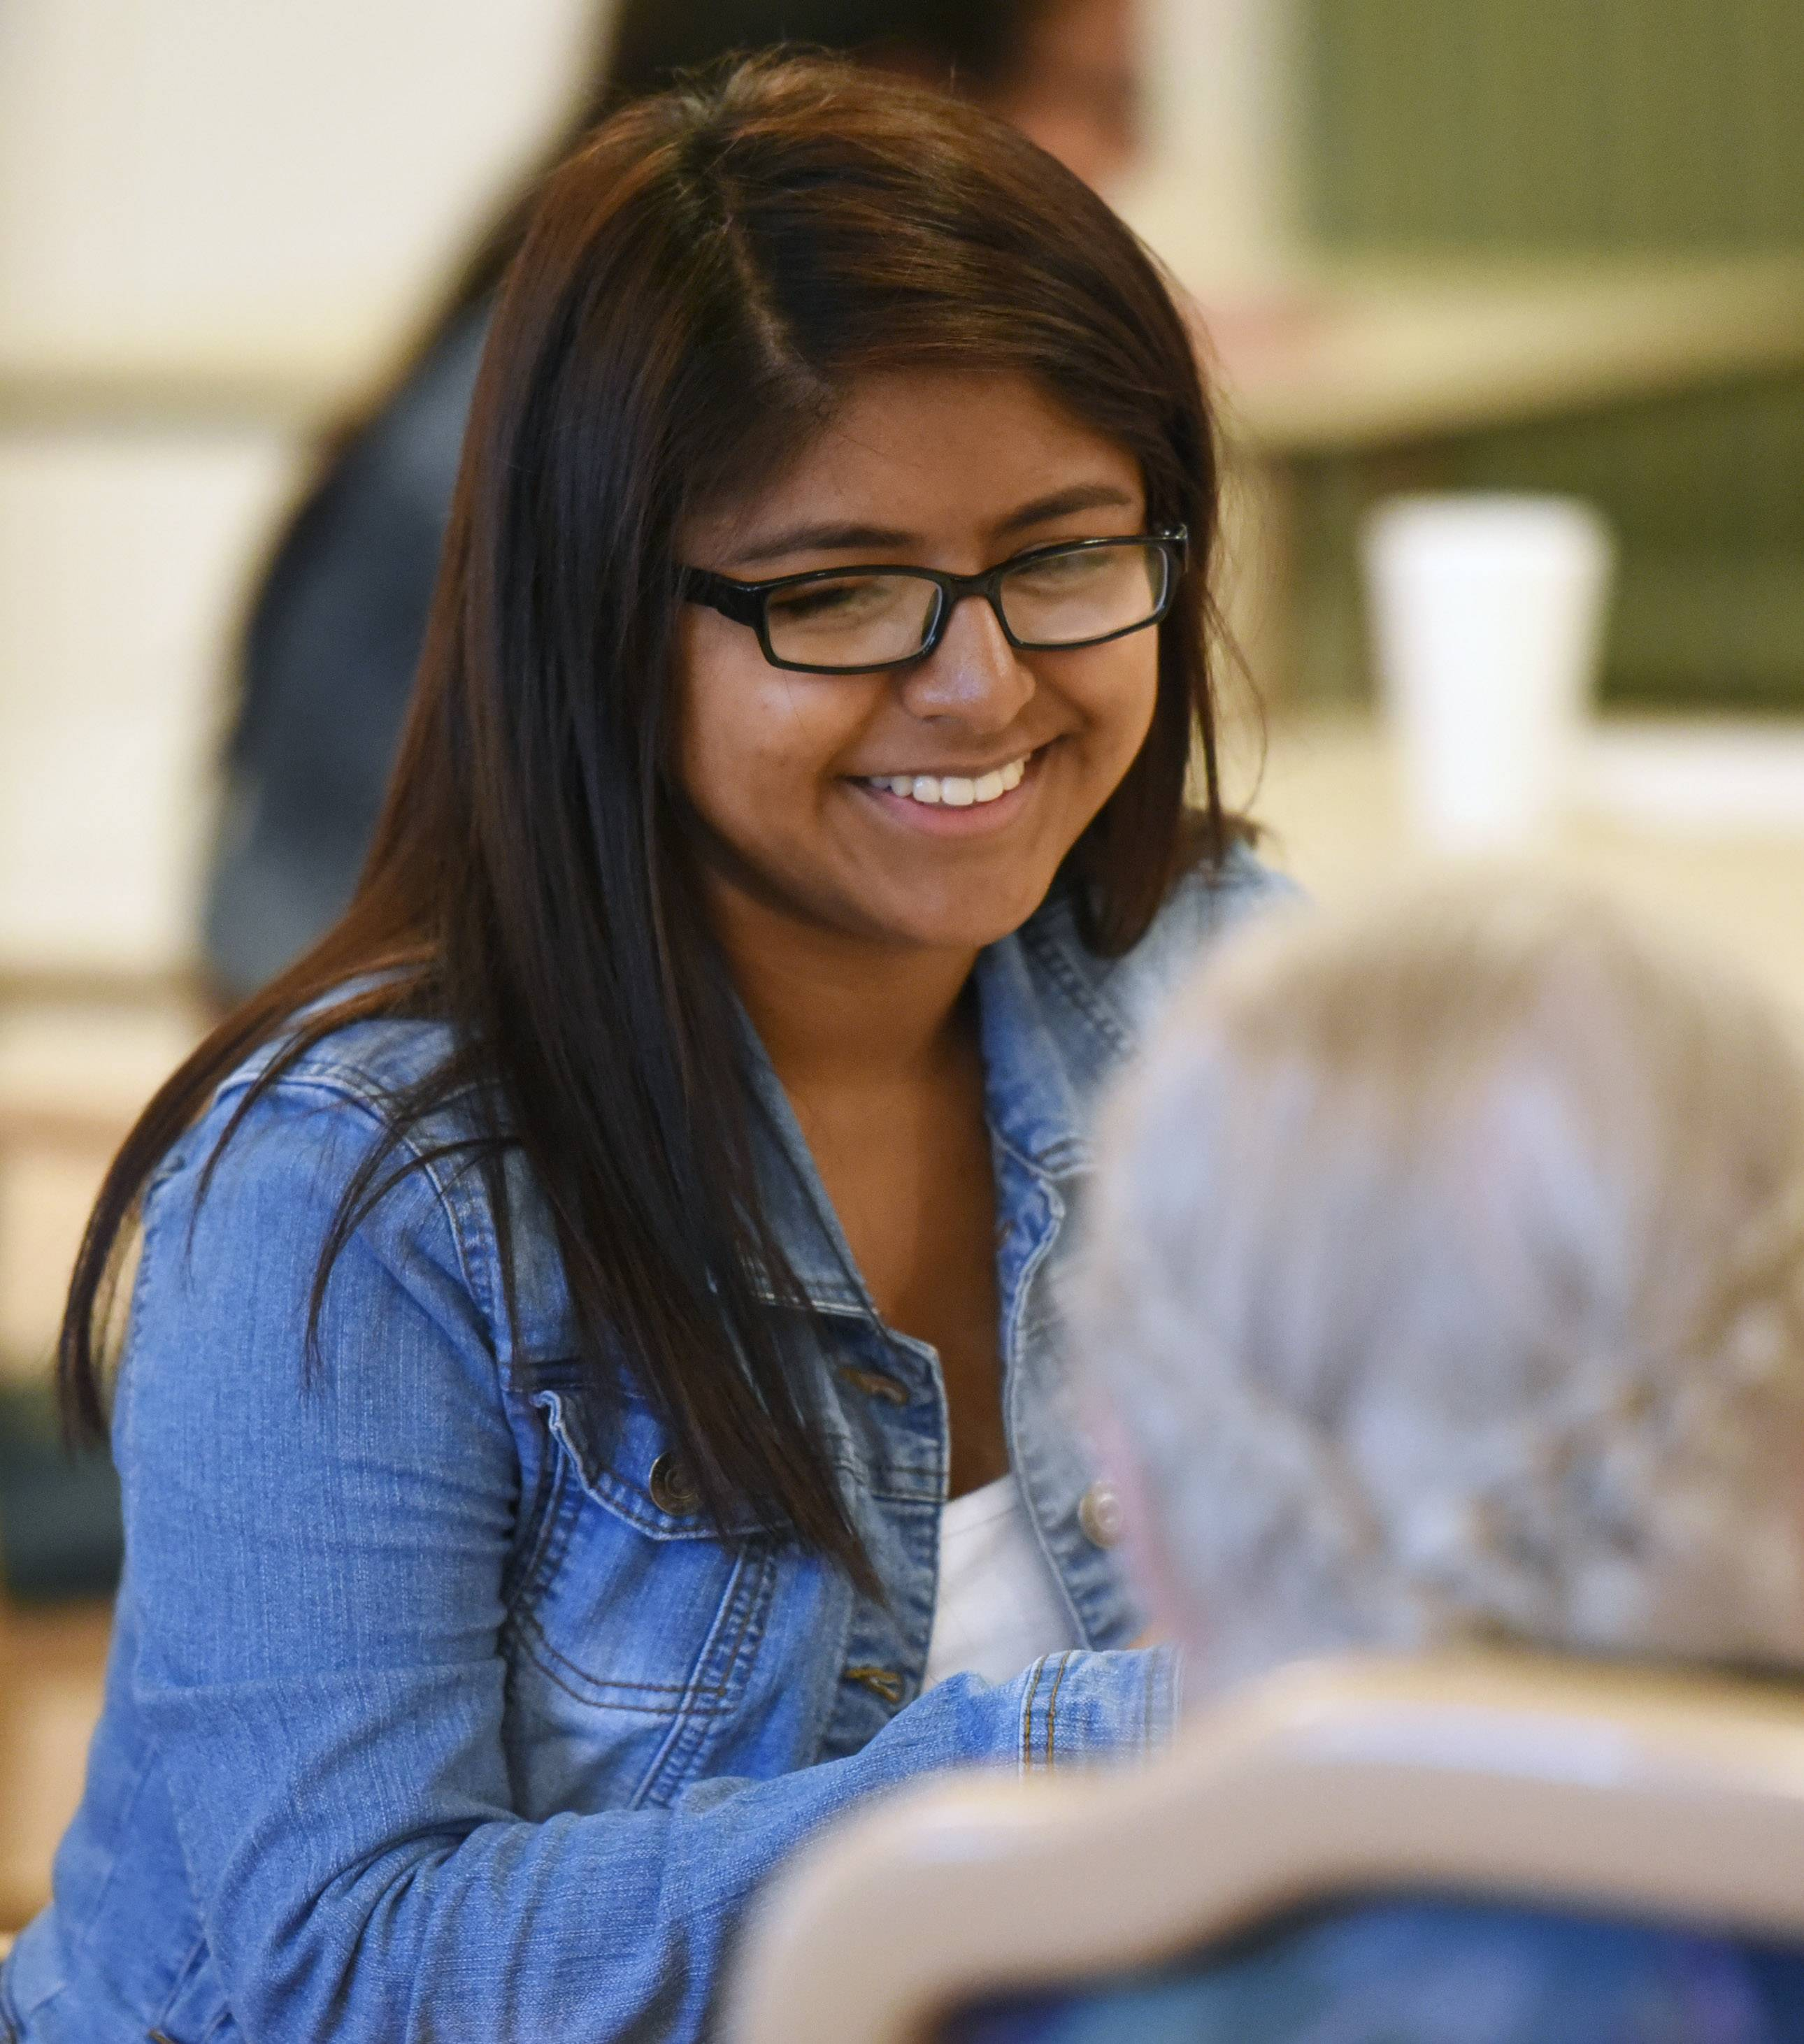 Wheeling High School student Leslye Najera enjoys talking to residents at Lexington Health Care Center in Wheeling.